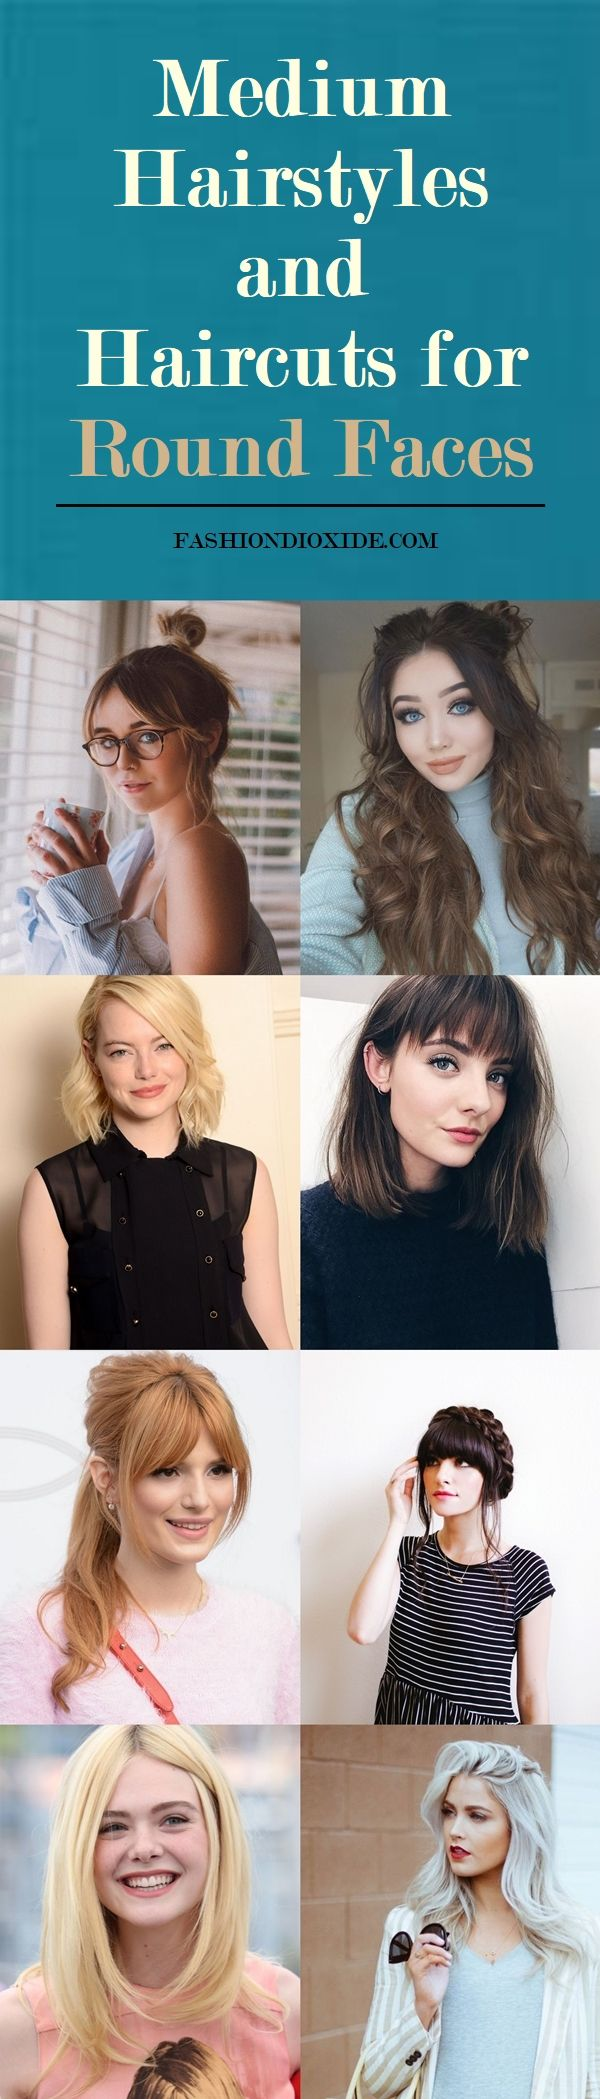 40 Medium Hairstyles and Haircuts for Round Faces 2018